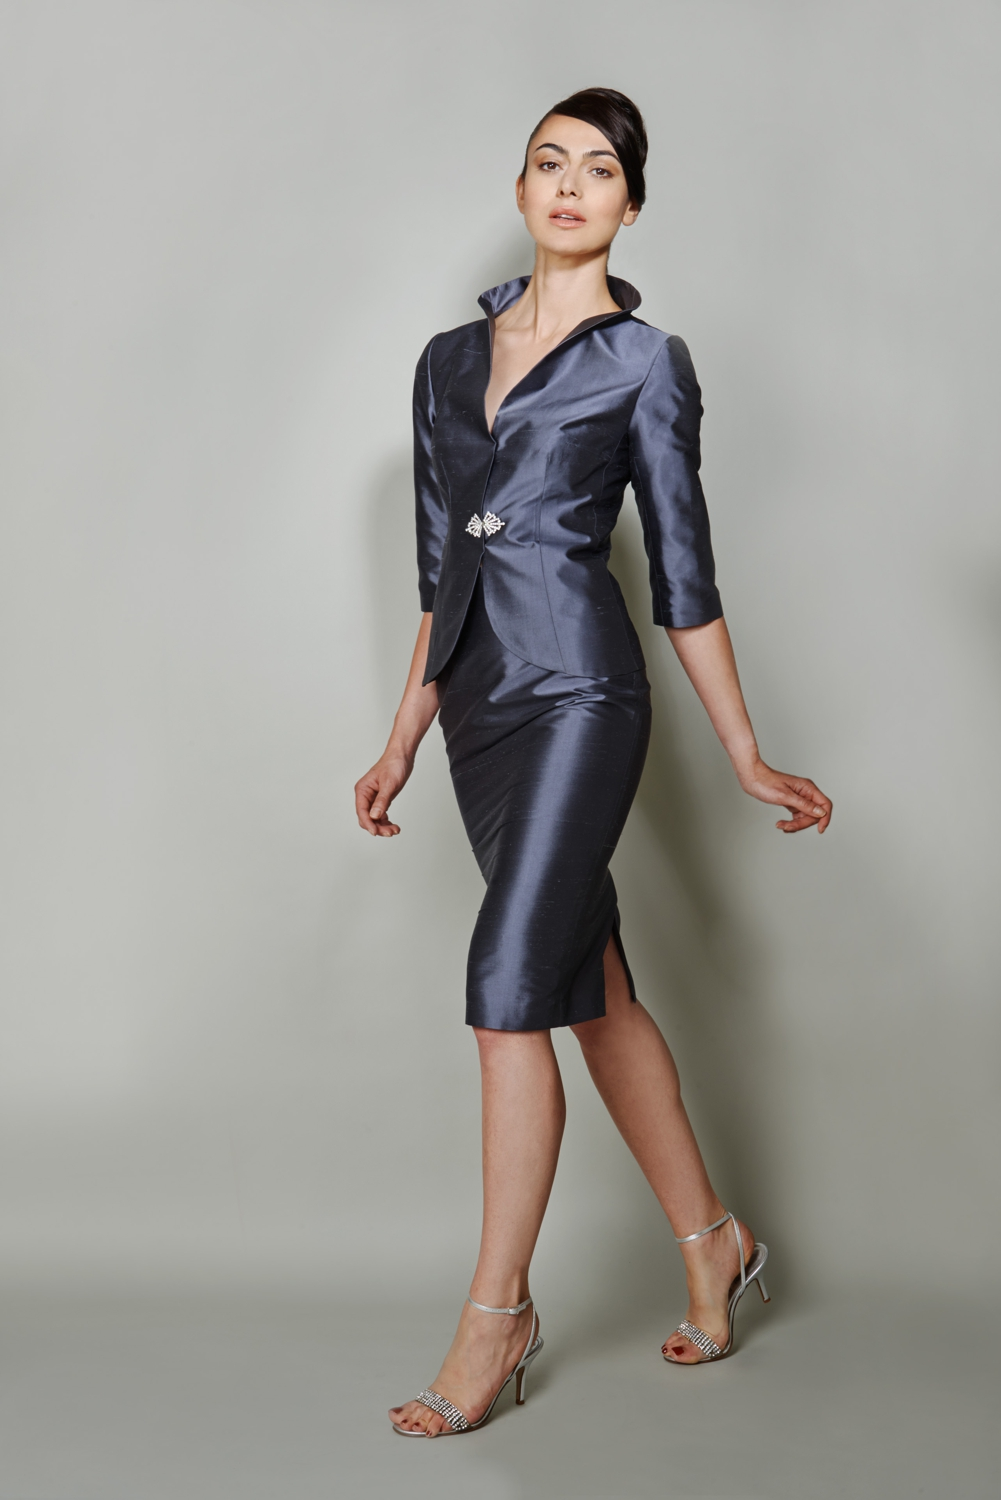 Grey silk designer occasion wear suit with stand-up collar